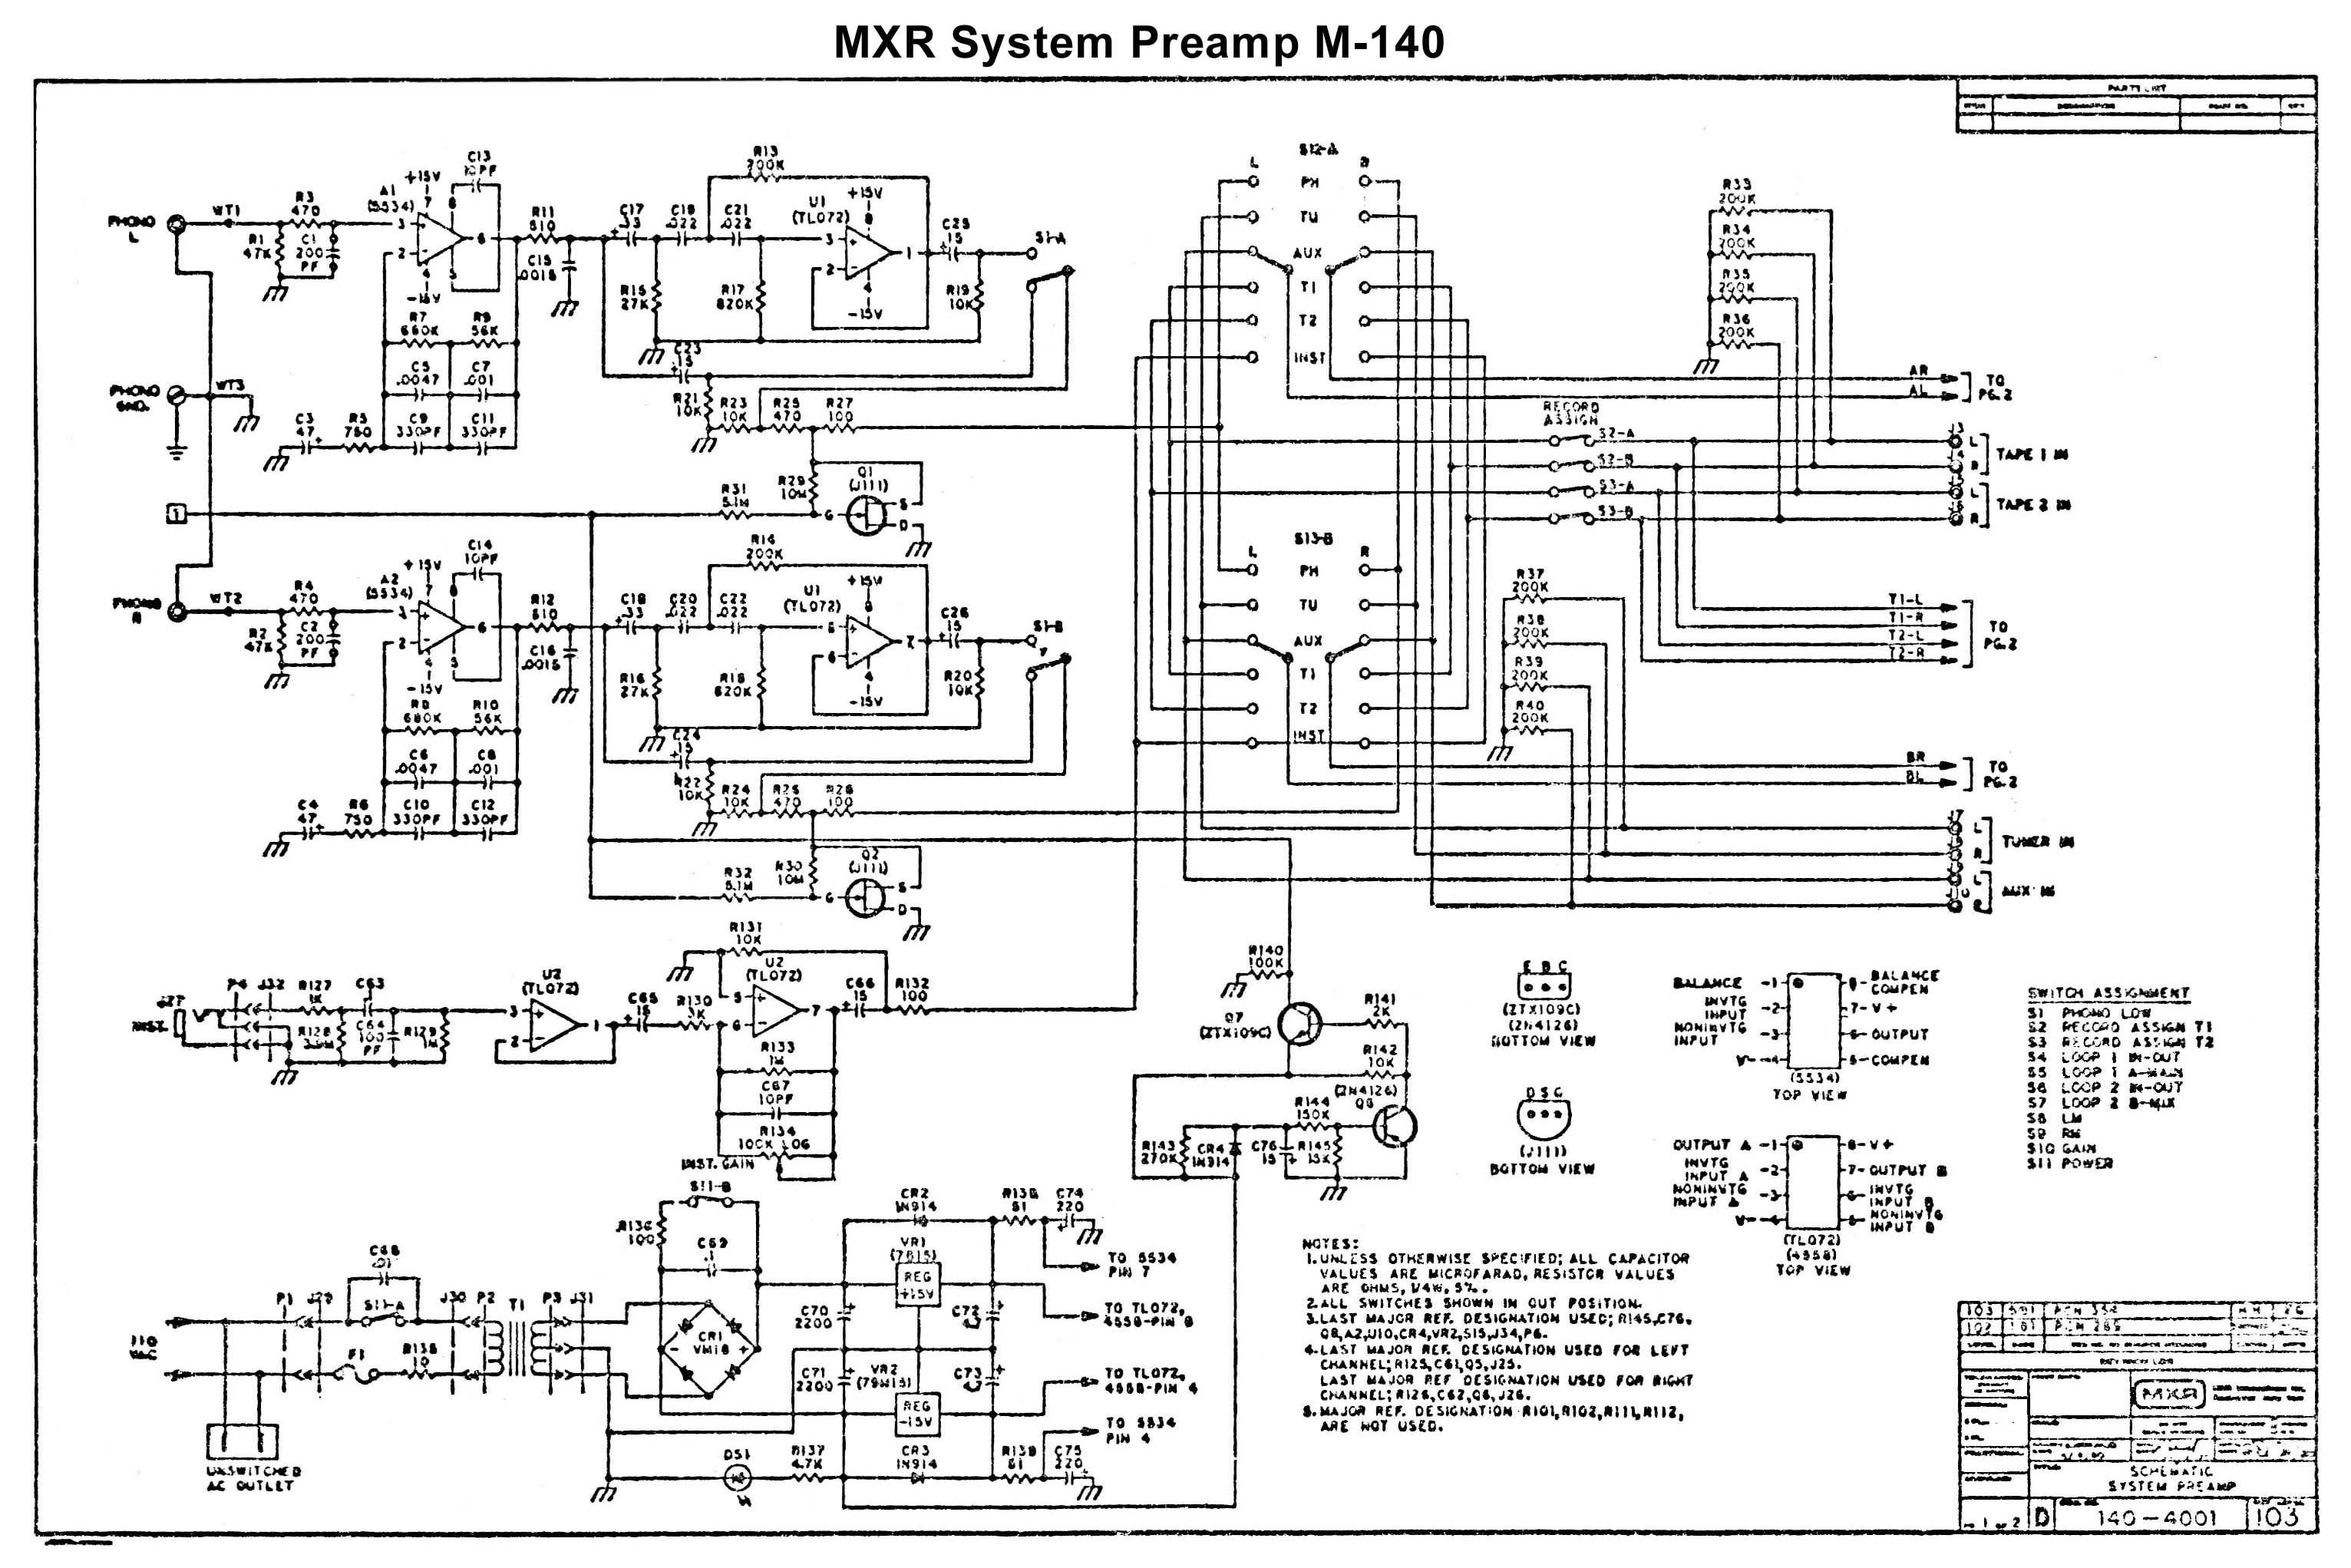 Schematic Mxr System Preamp Ii M 150 Low Noise Audio Preamplifier Circuit 140 Page 1